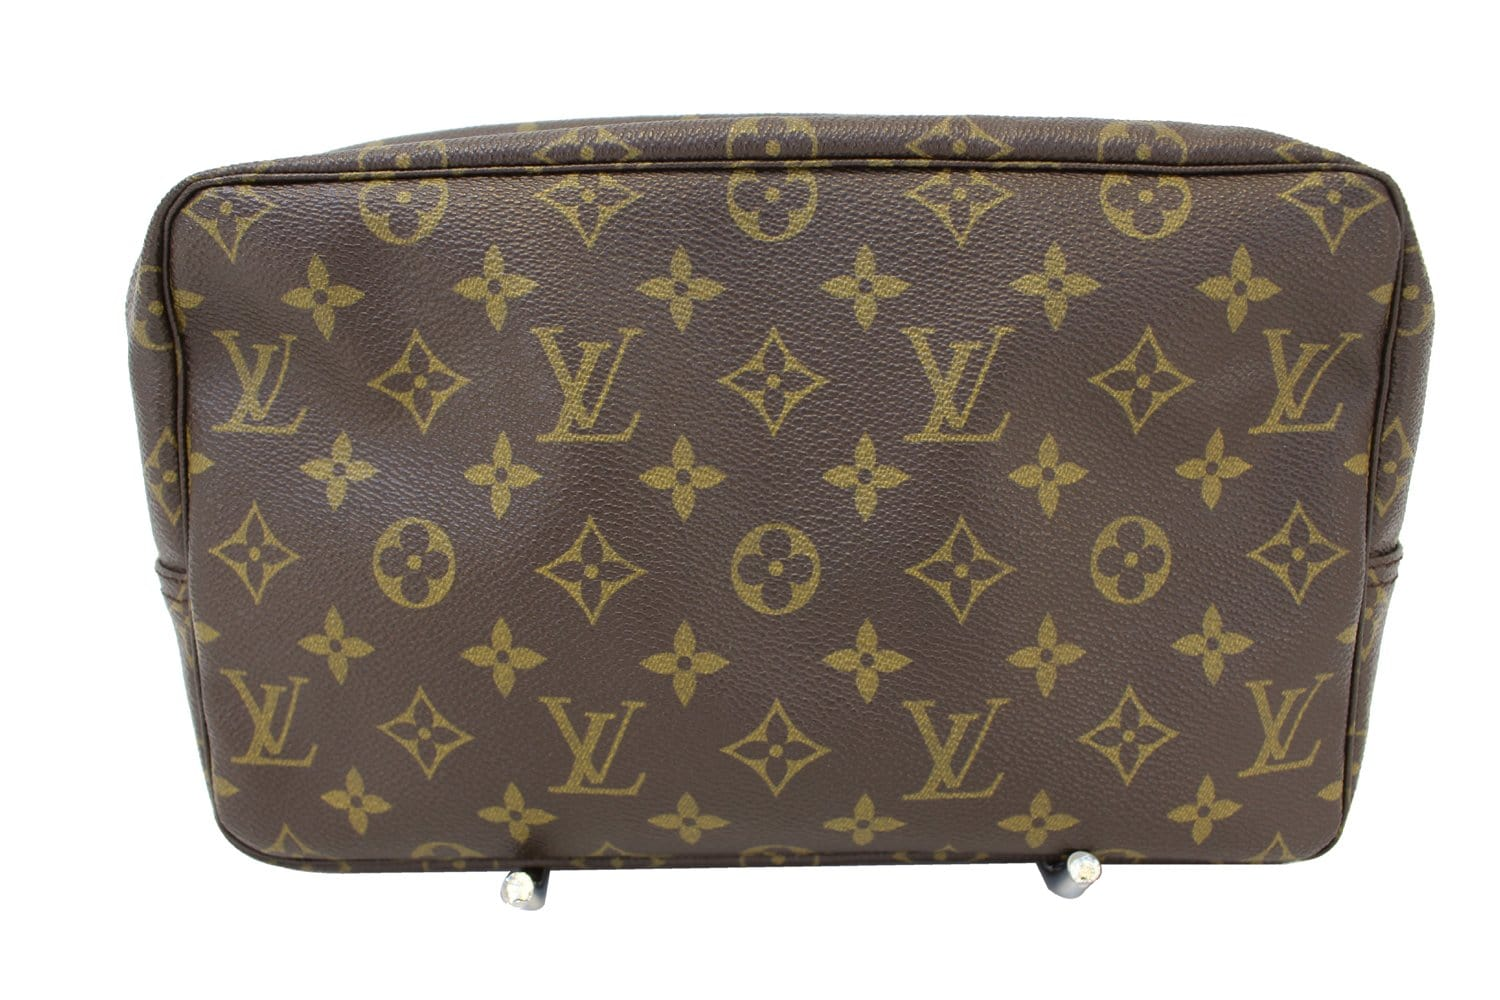 Authentic LOUIS VUITTON Monogram Canvas Trousse Toilette 28 Clutch TT1 c36f4b2d17e7e